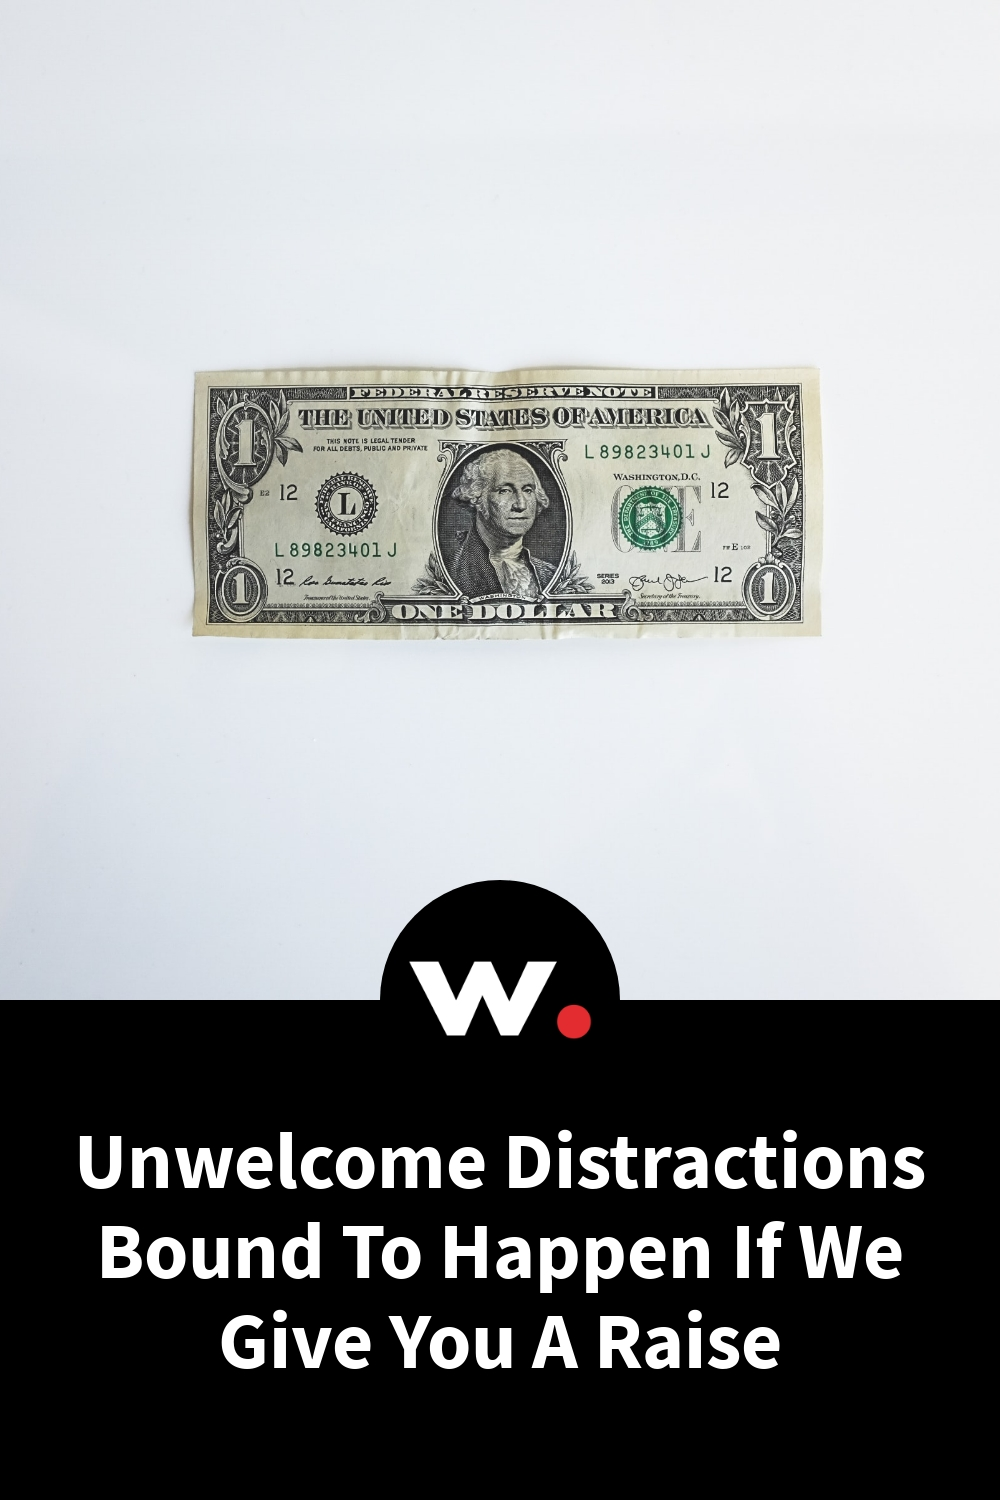 Unwelcome Distractions Bound To Happen If We Give You A Raise